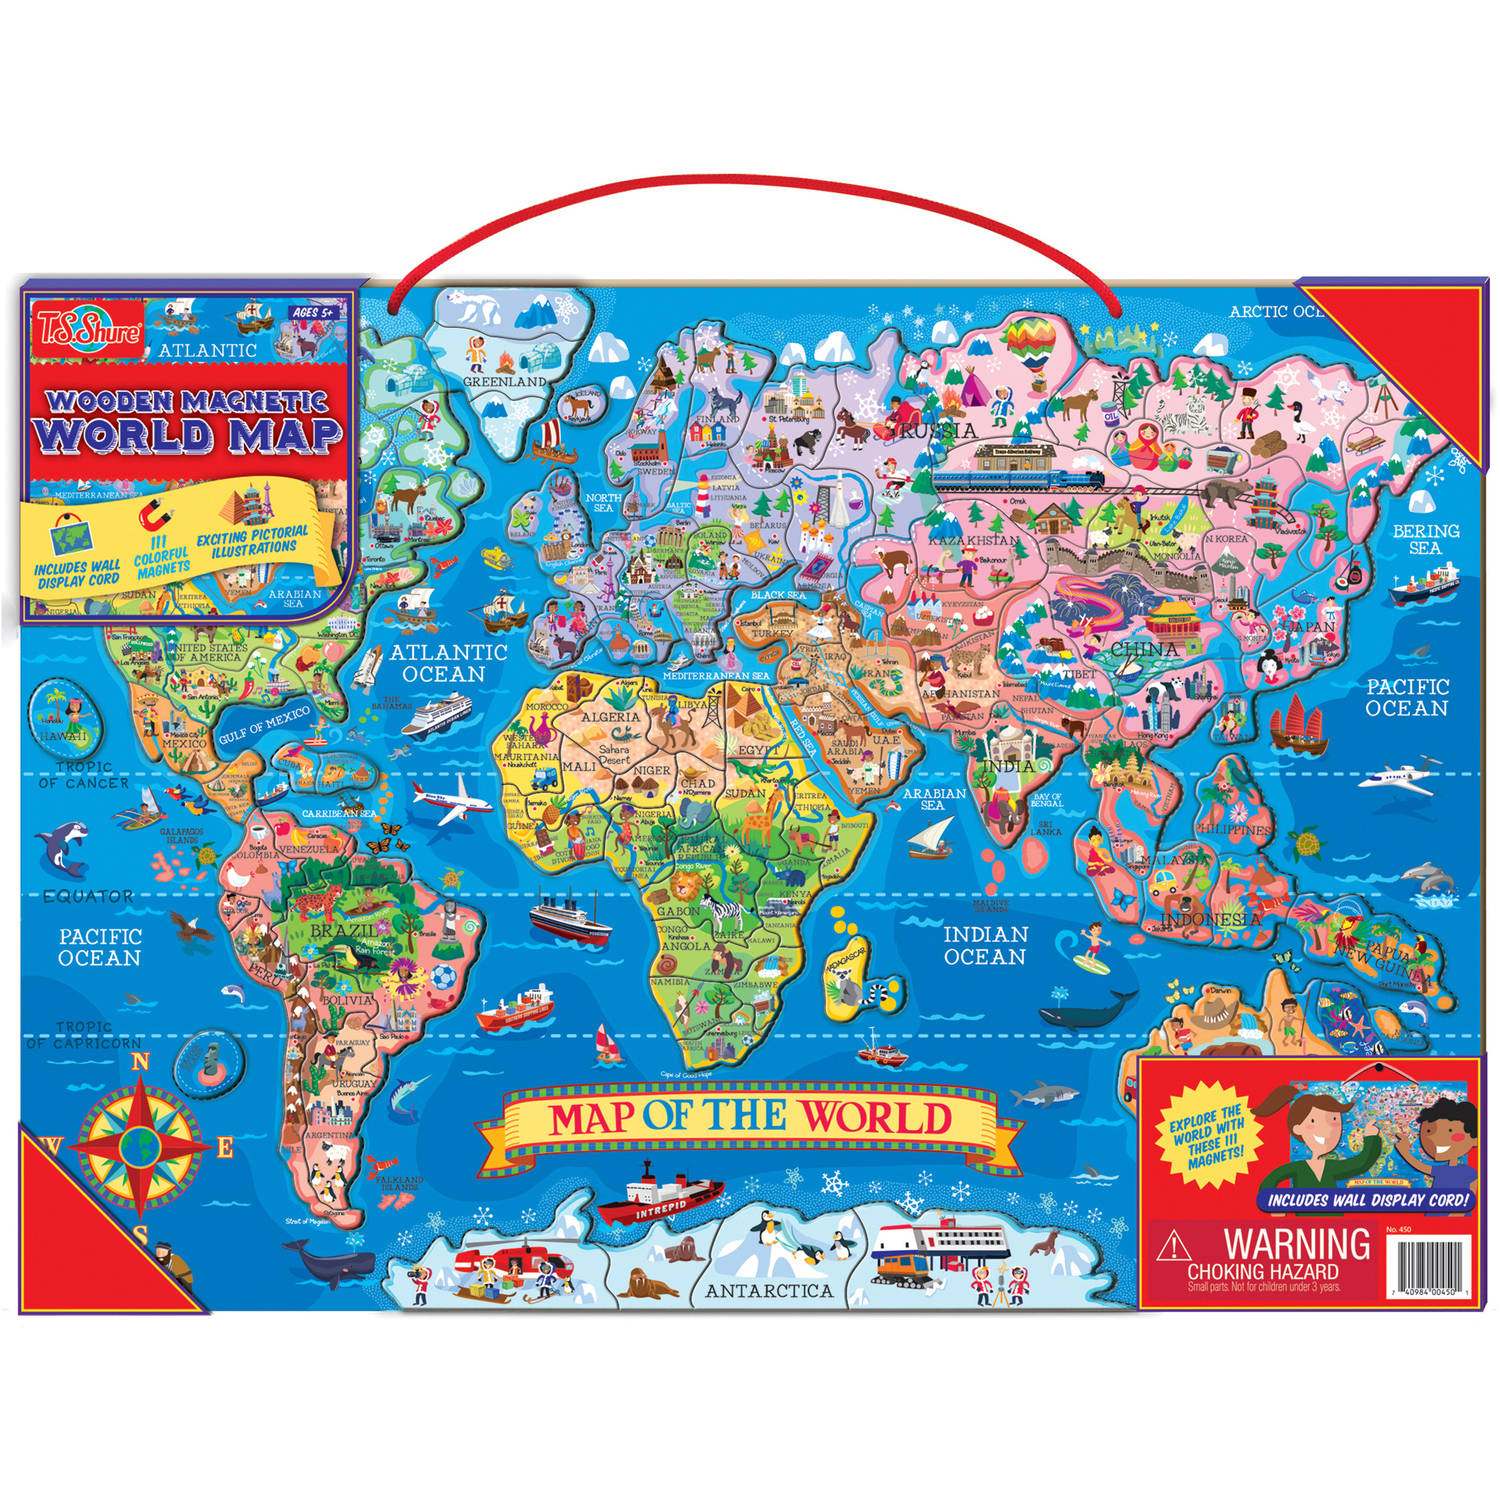 T.S. Shure Wooden Magnetic World Map